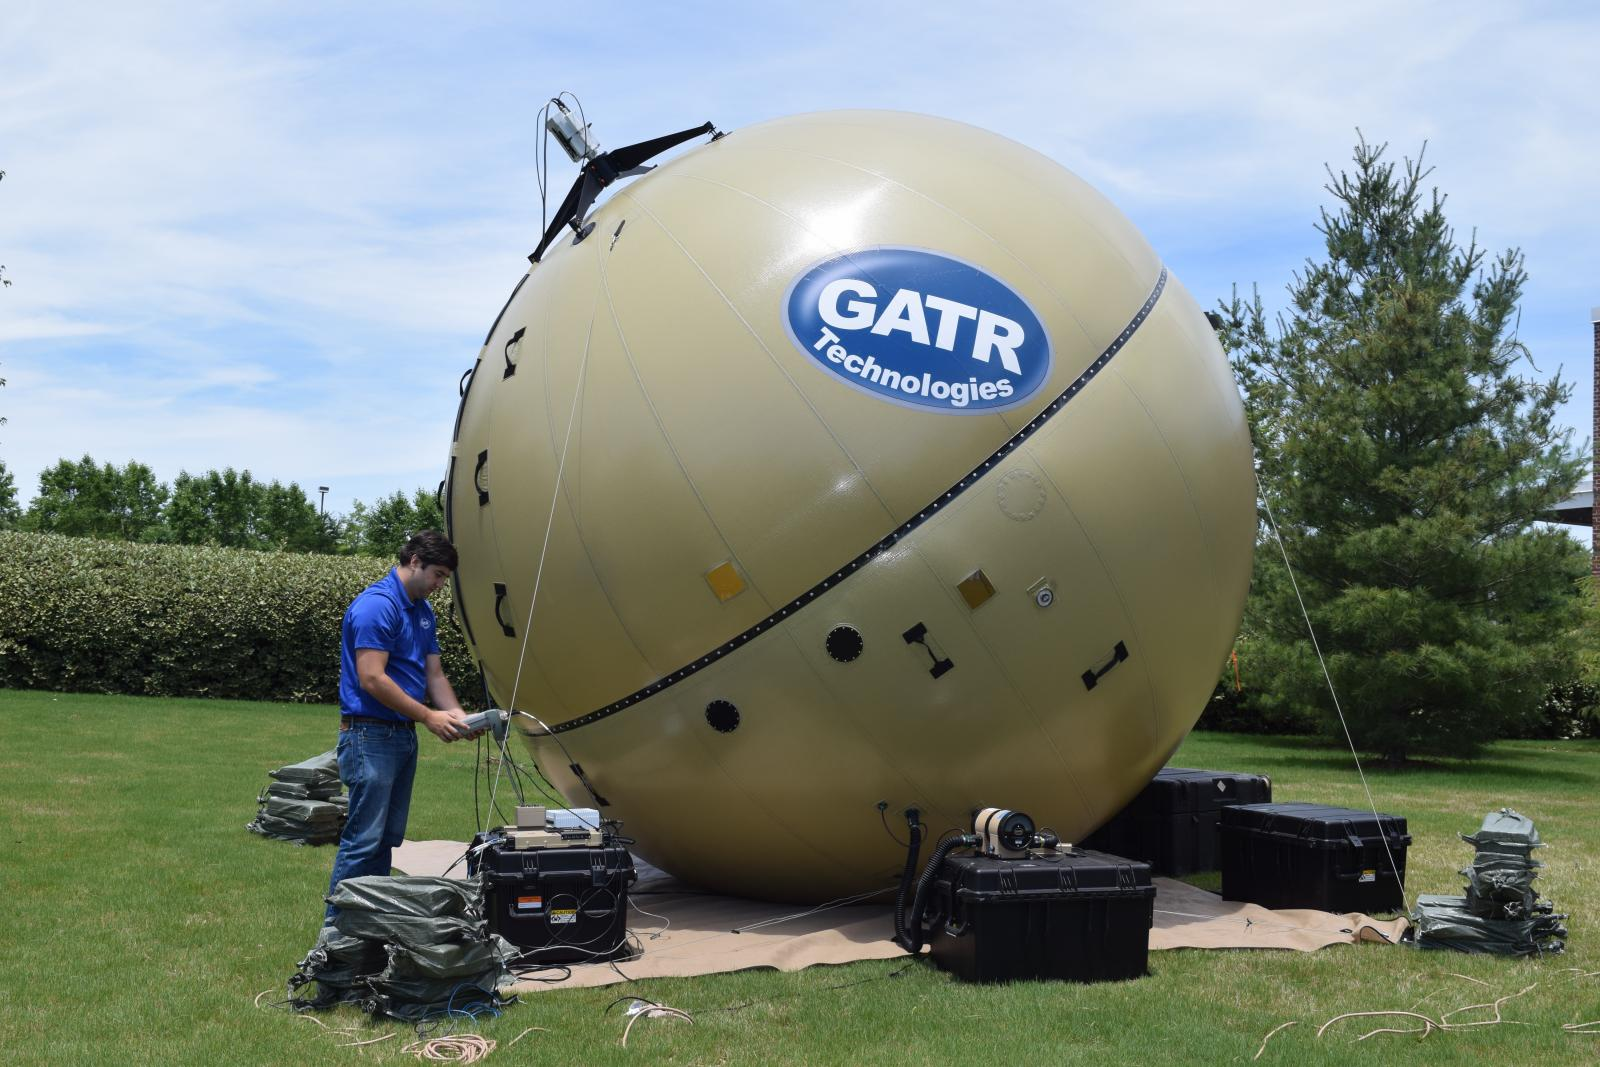 GATR Antennas: The Most Portable Satellite in the World